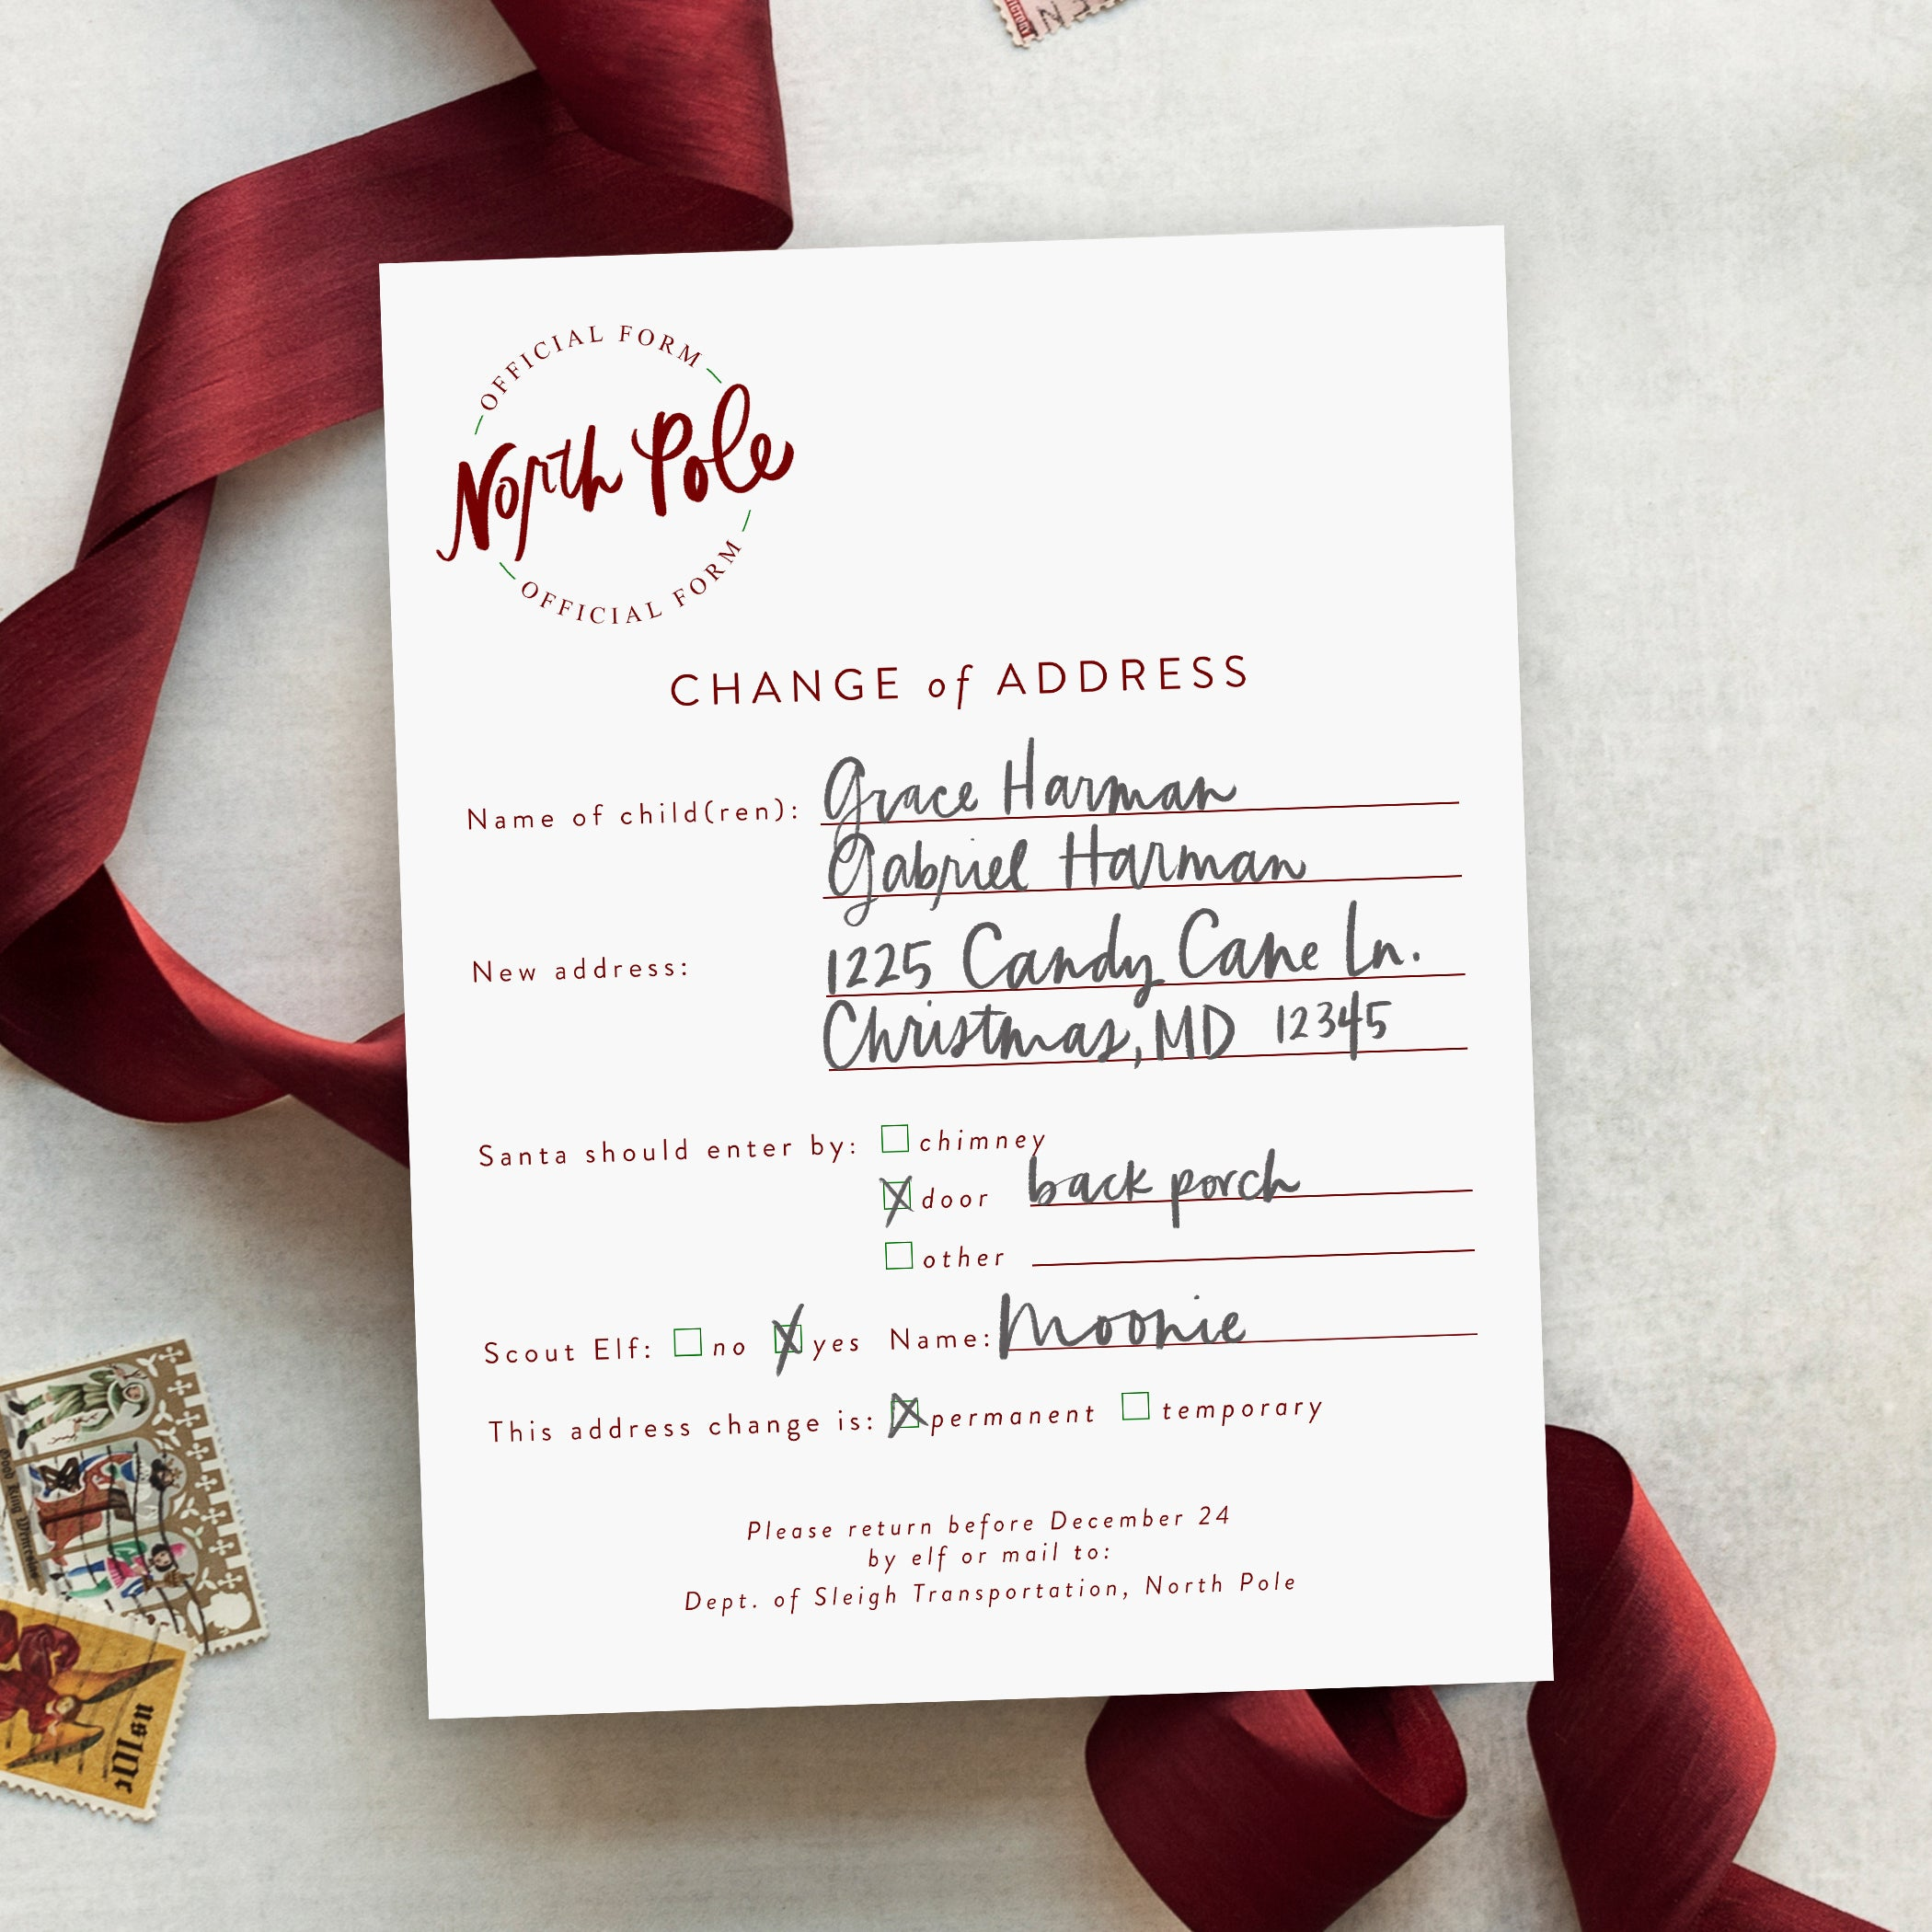 North Pole Change of Address Form - Printable